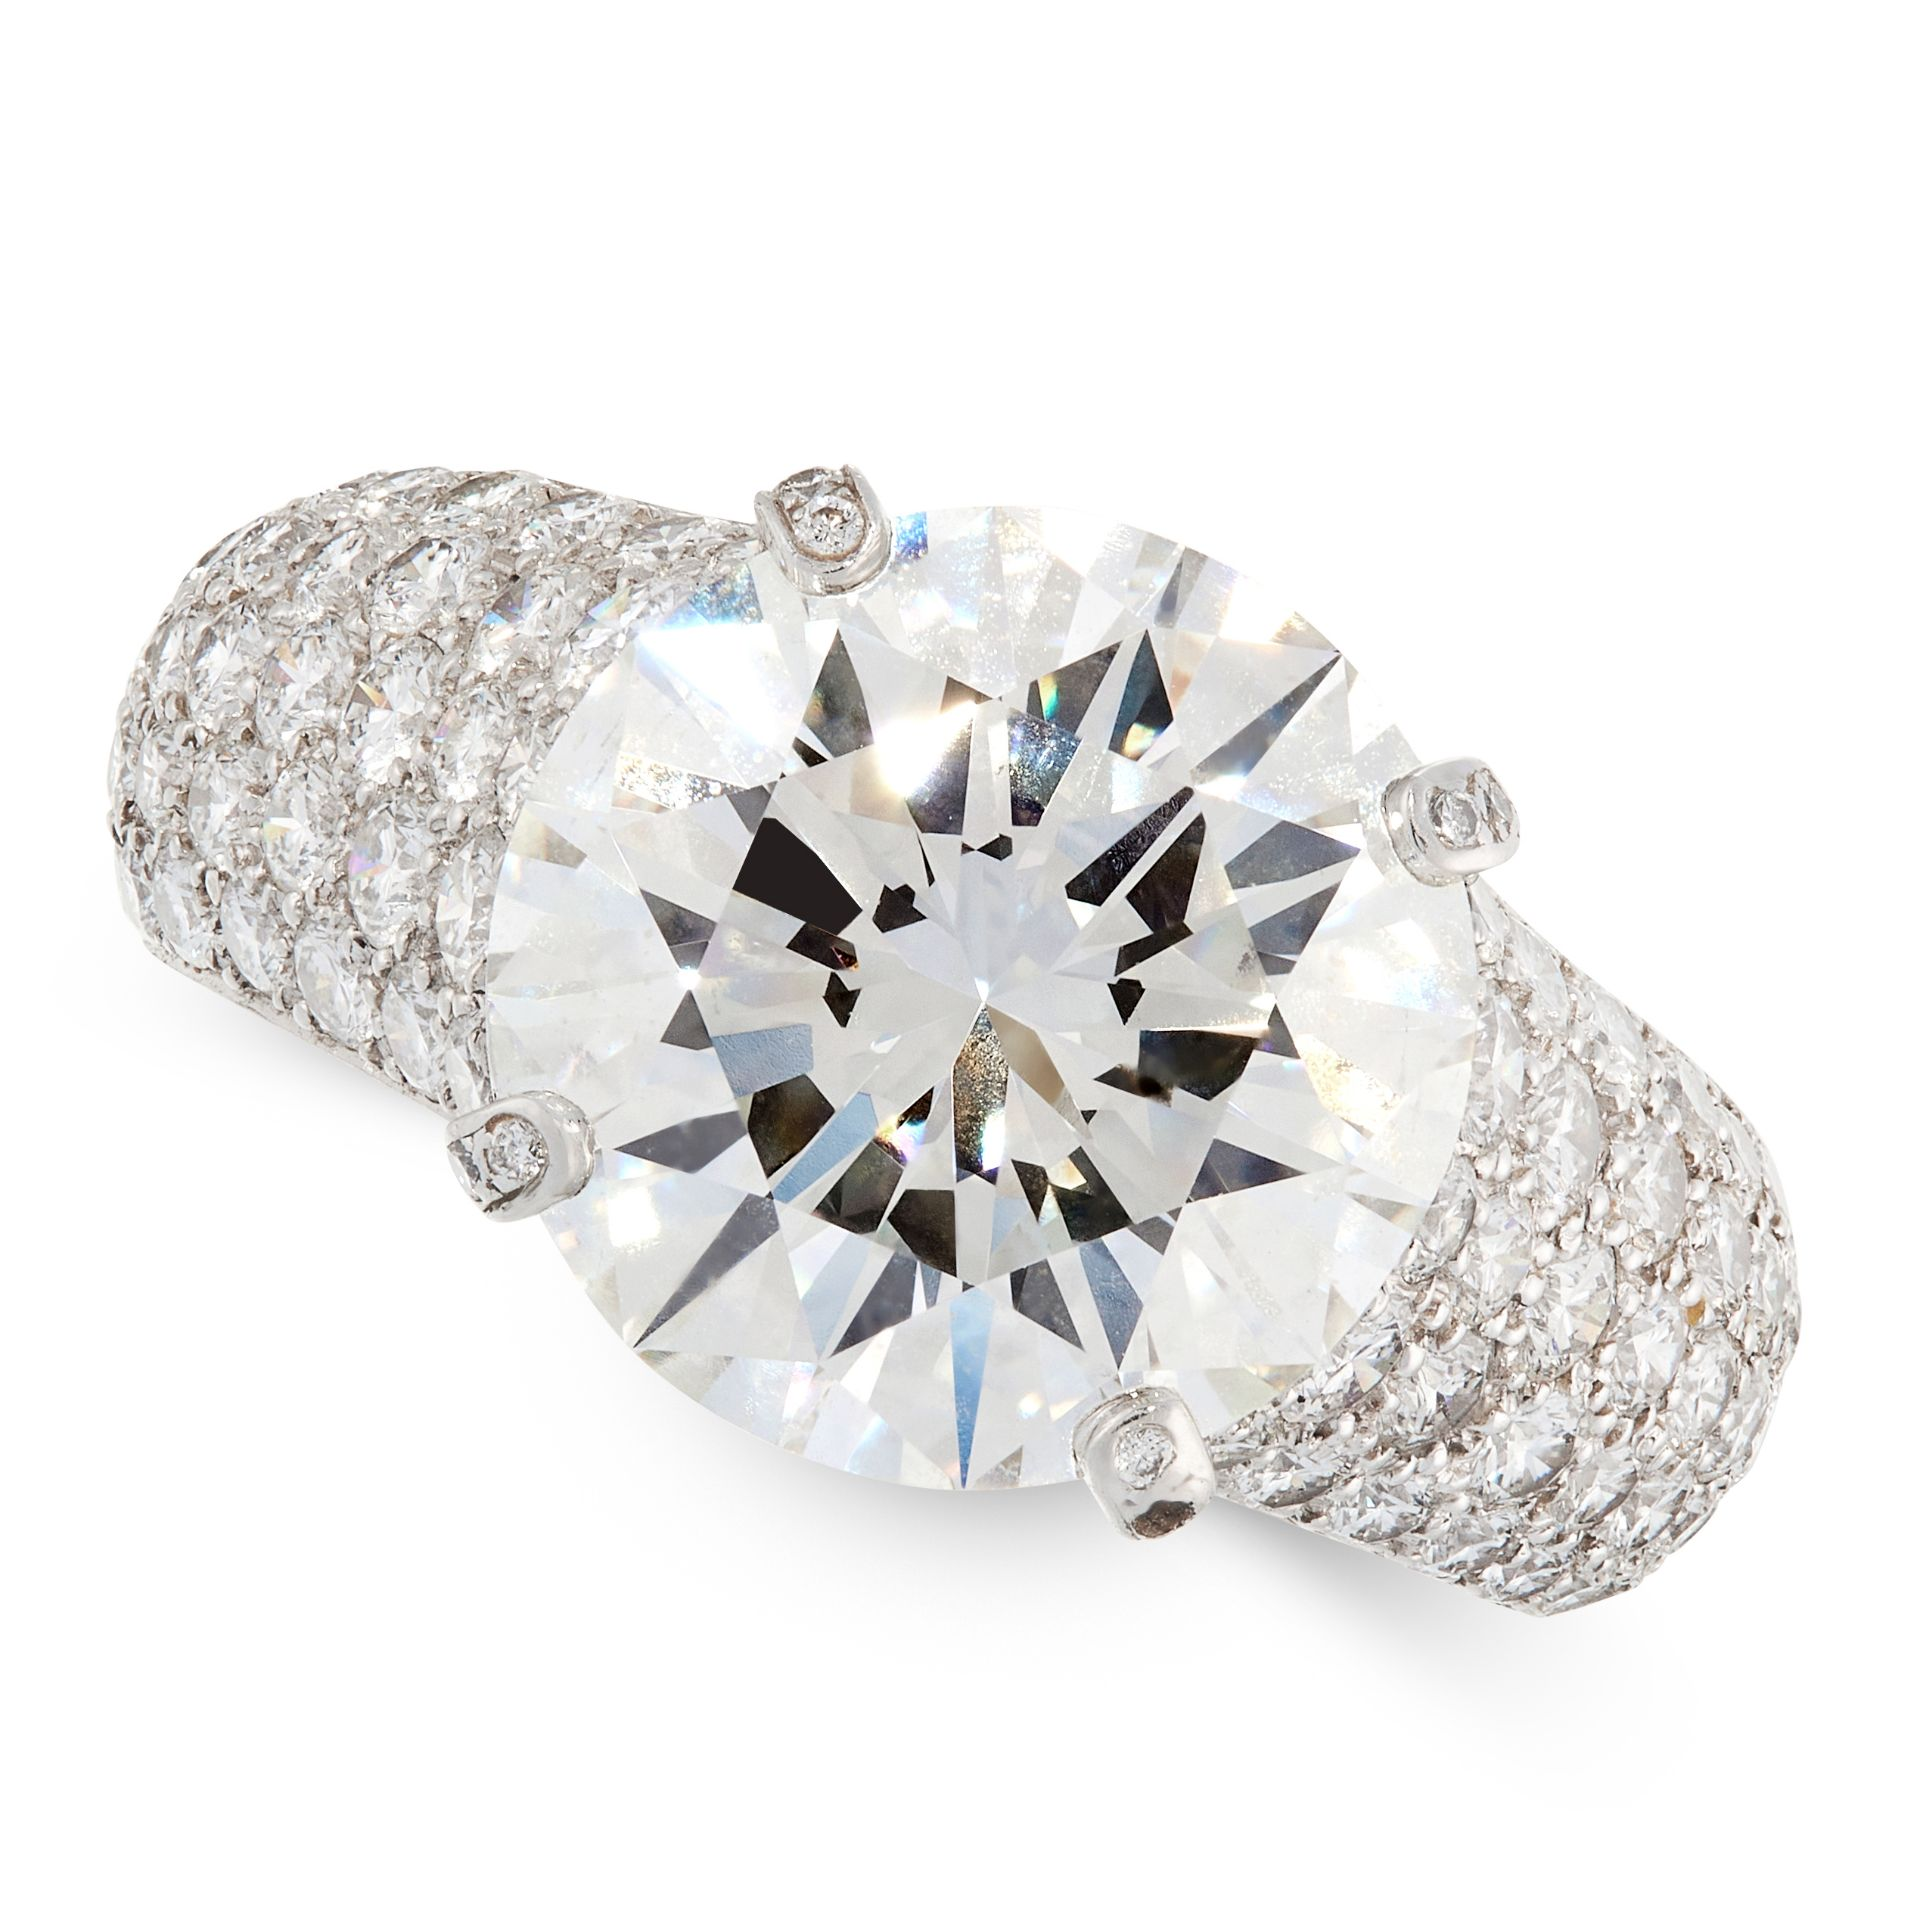 AN IMPORTANT 6.36 CARAT SOLITAIRE DIAMOND RING, CARTIER in platinum, set with a round cut diamond of